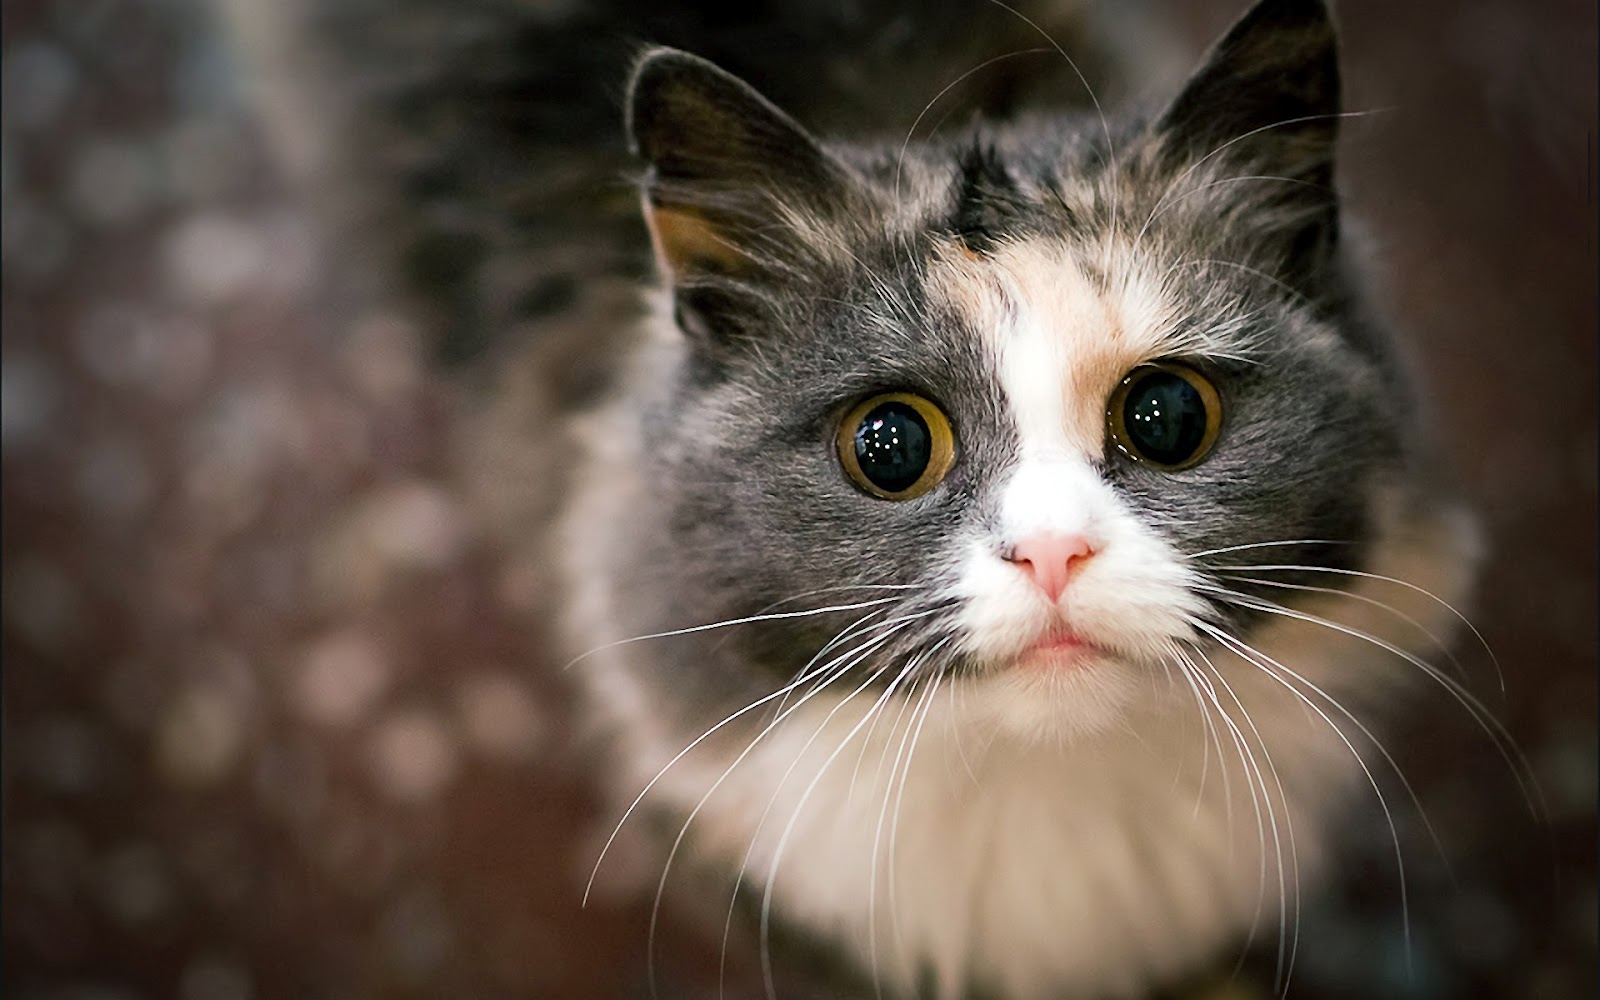 Just a Lovely Cat Hd 1080p Wallpaper The Wallpaper Database 1600x1000